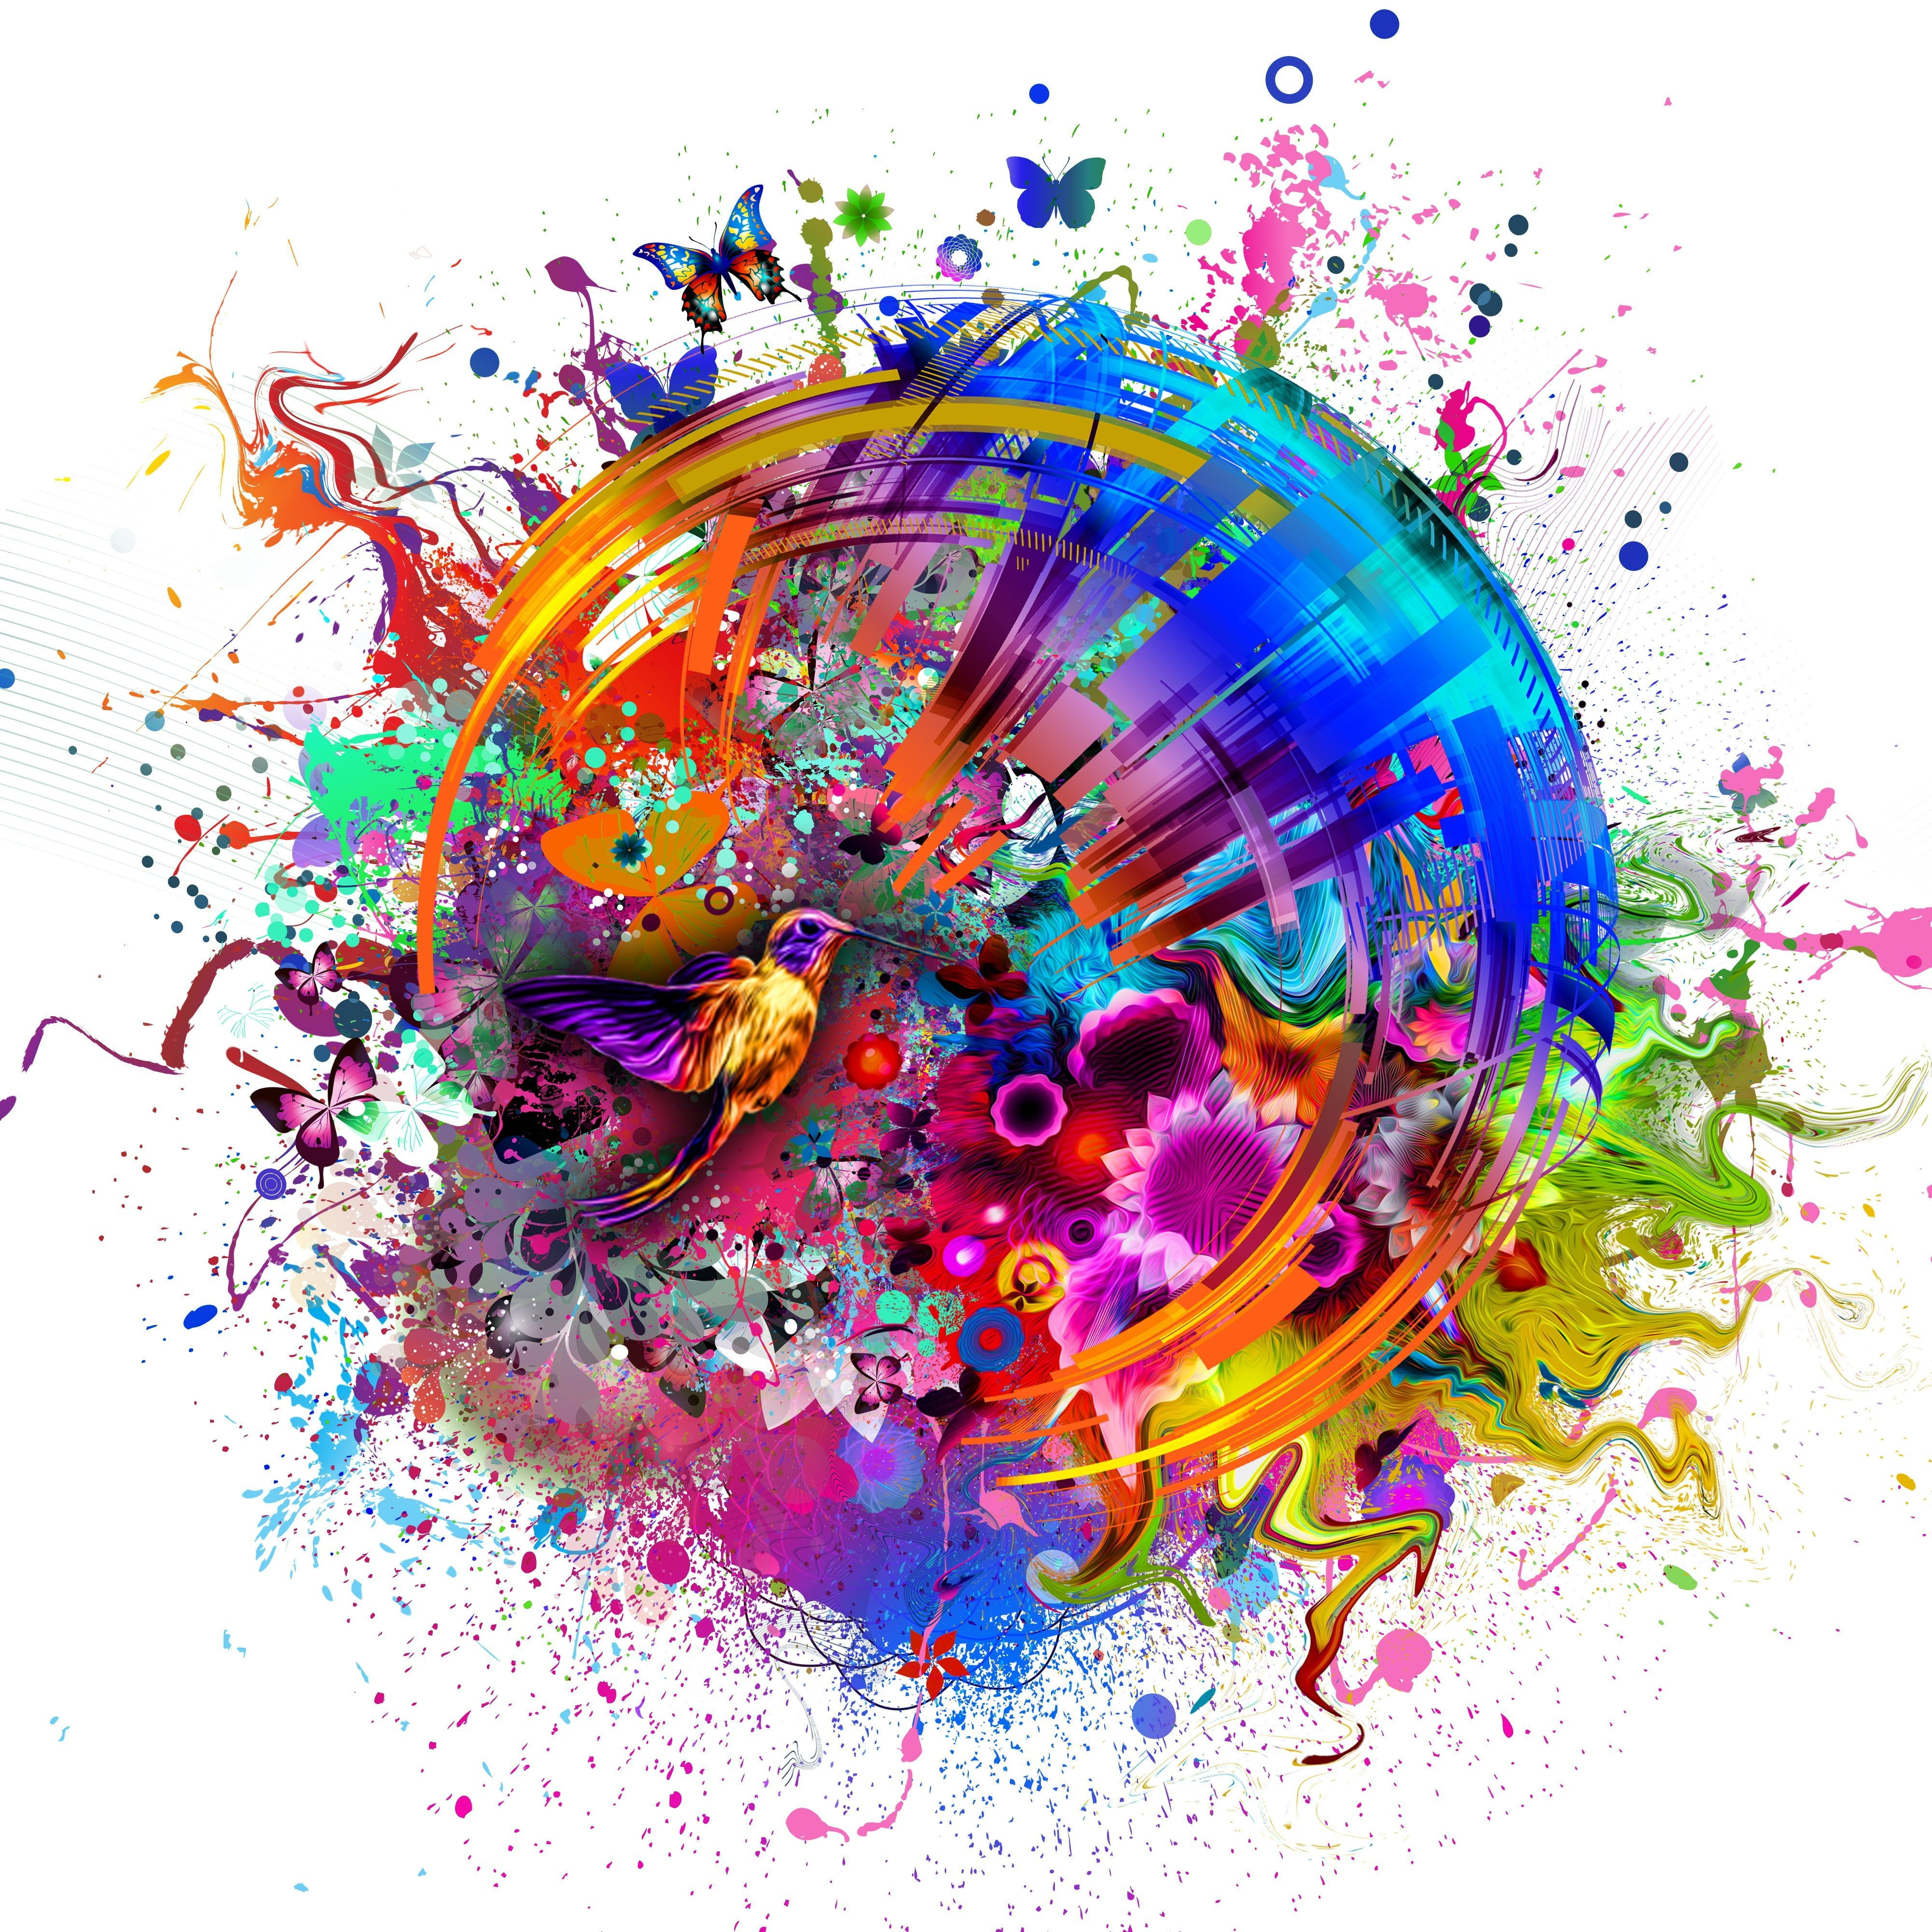 4k Wallpaper Colorful 3d Wallpapers Abstract Wallpaper Abstract Painting Wallpaper